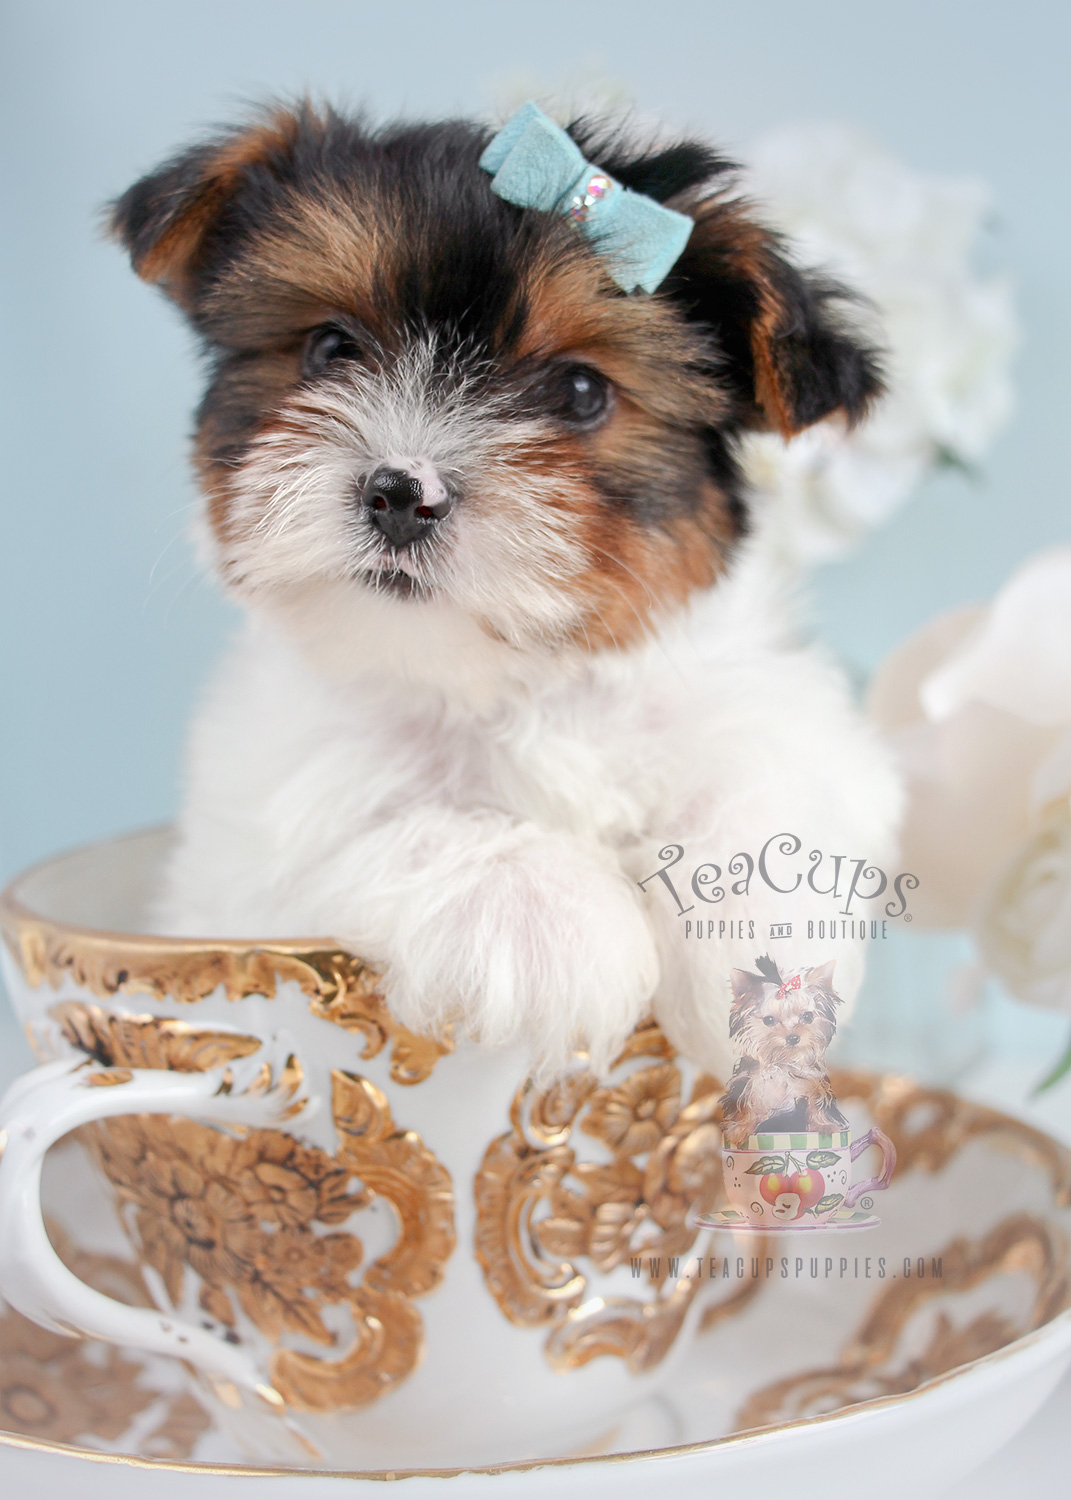 biewer terrier puppies for sale yorkshire terriers here teacups puppies boutique 2795